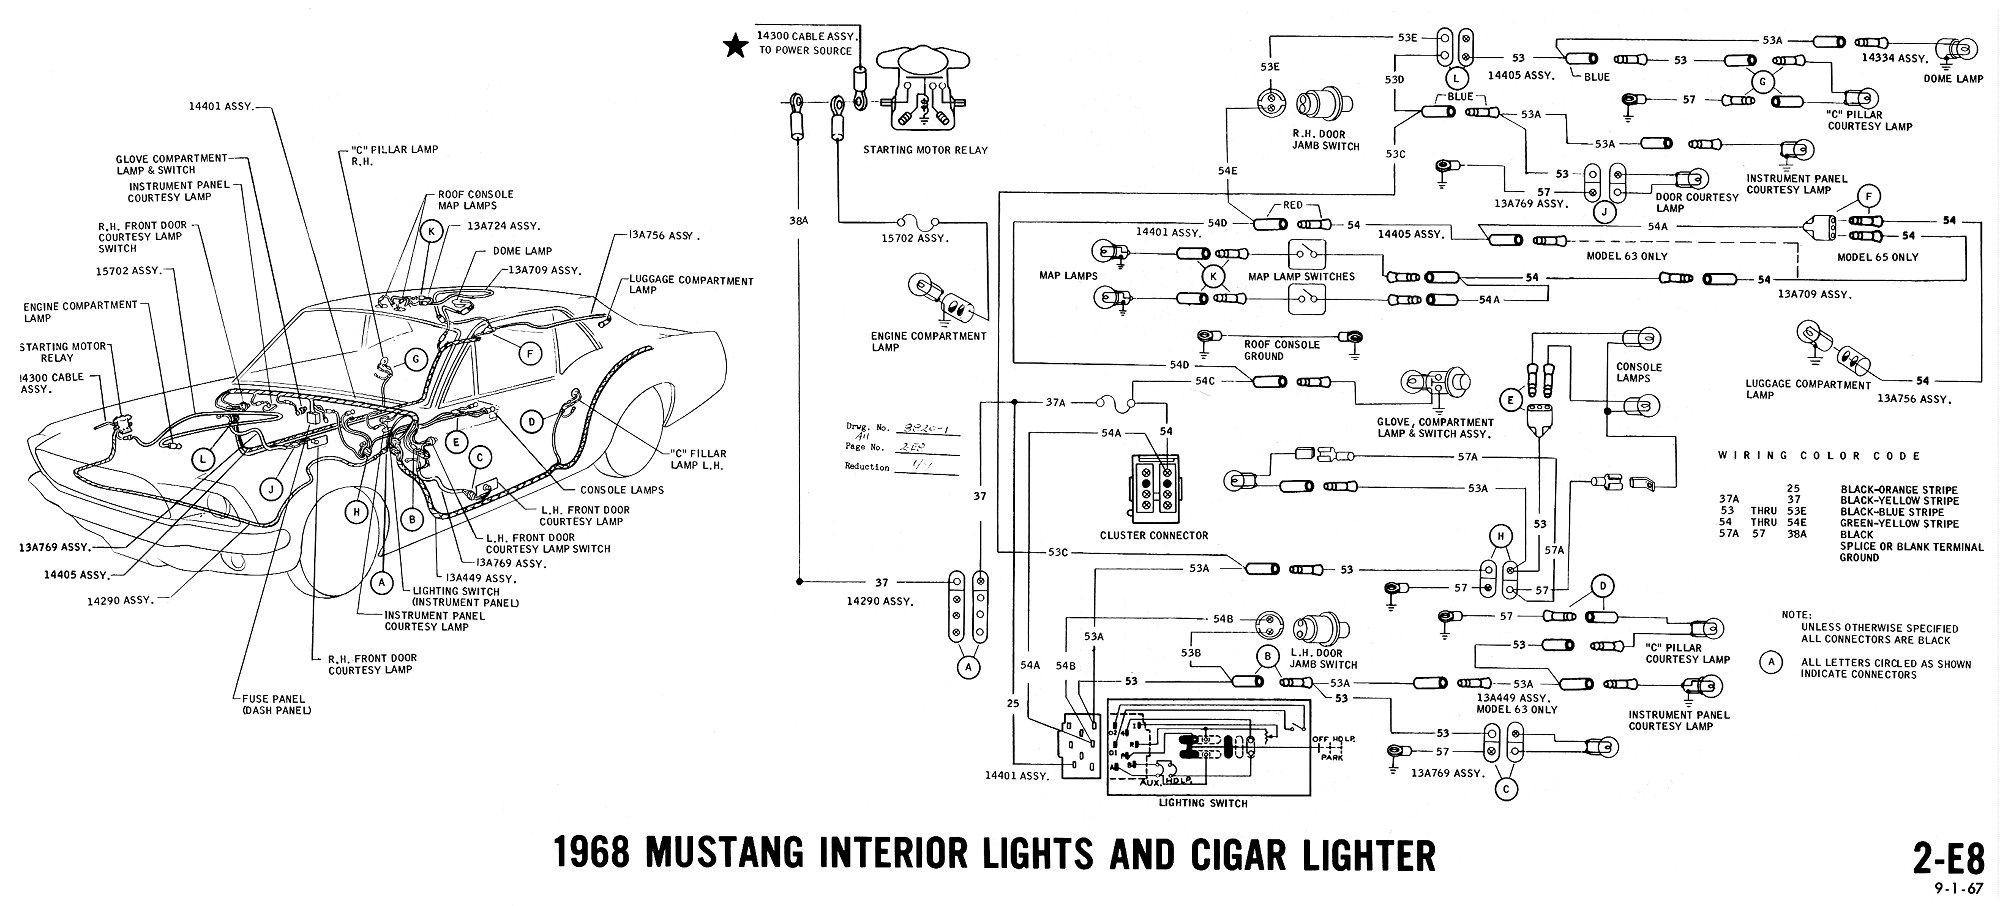 1968 Mustang Wiring Diagrams Evolving Software Auto Test Cigar Lighter Interior Lights